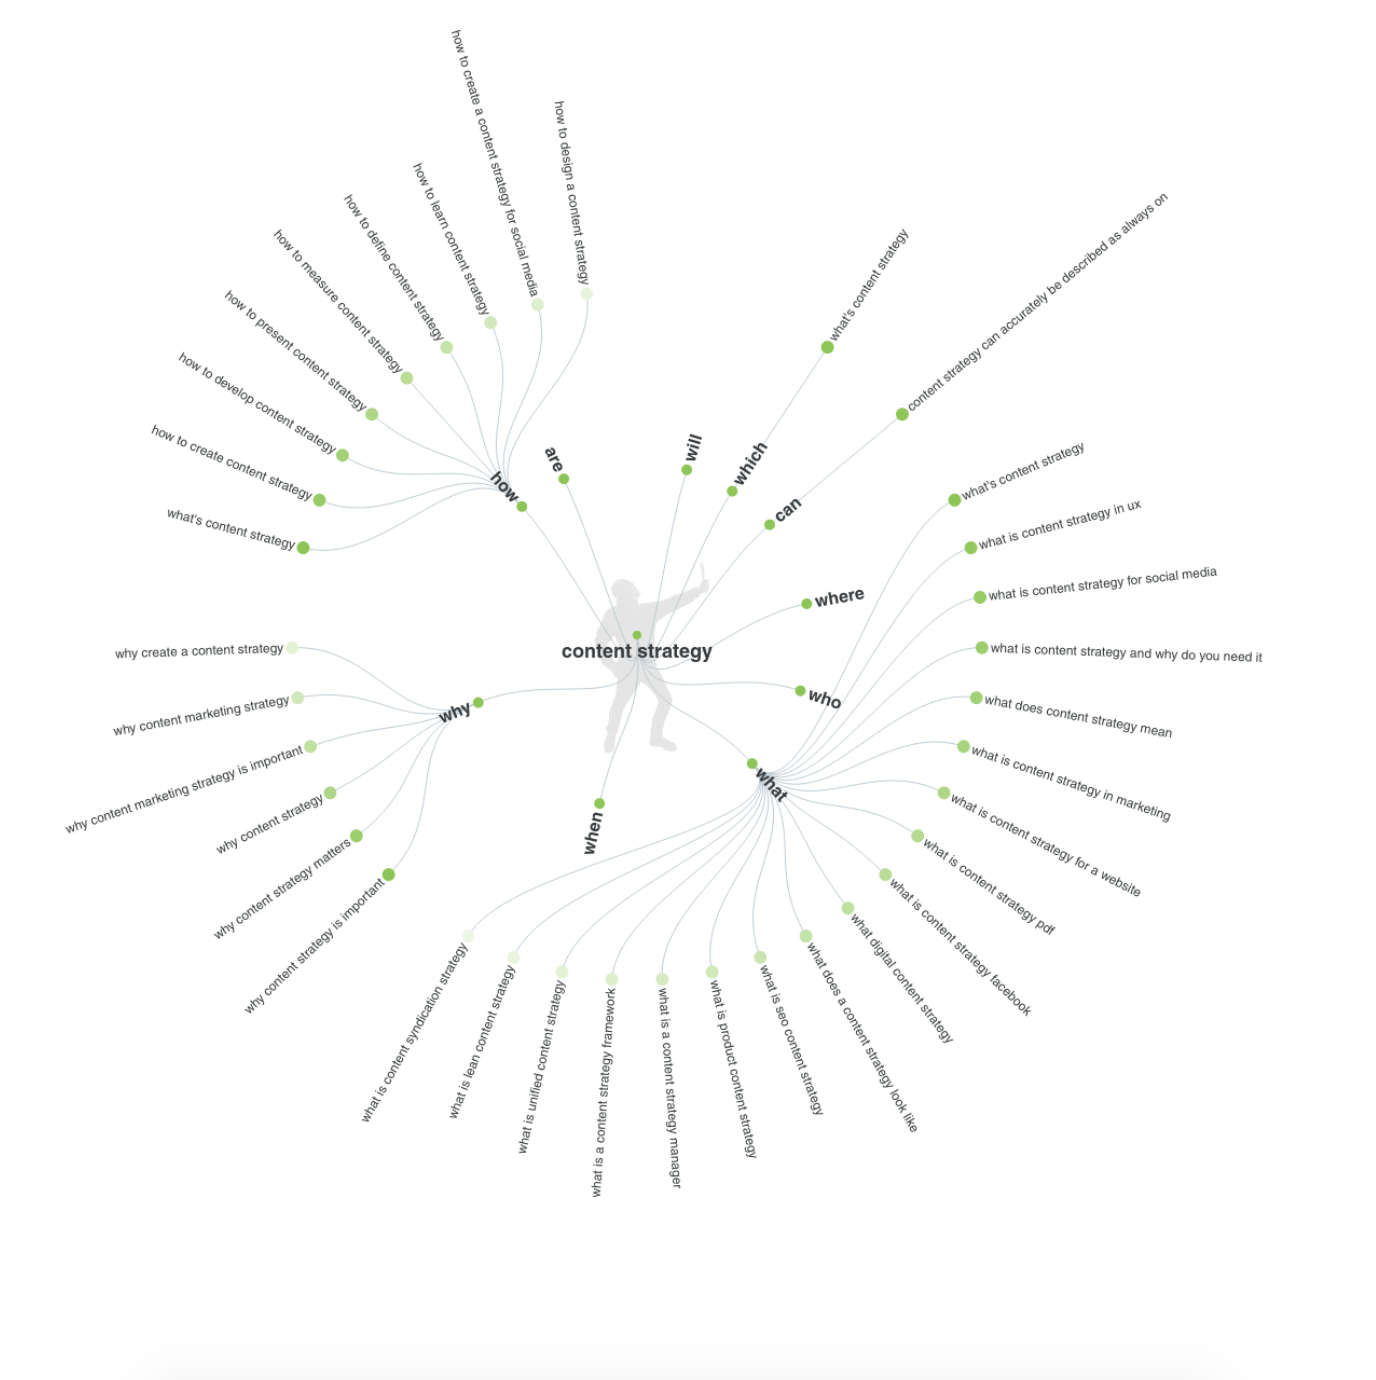 A visualisation showing content ideas based on questions asked around content strategy,